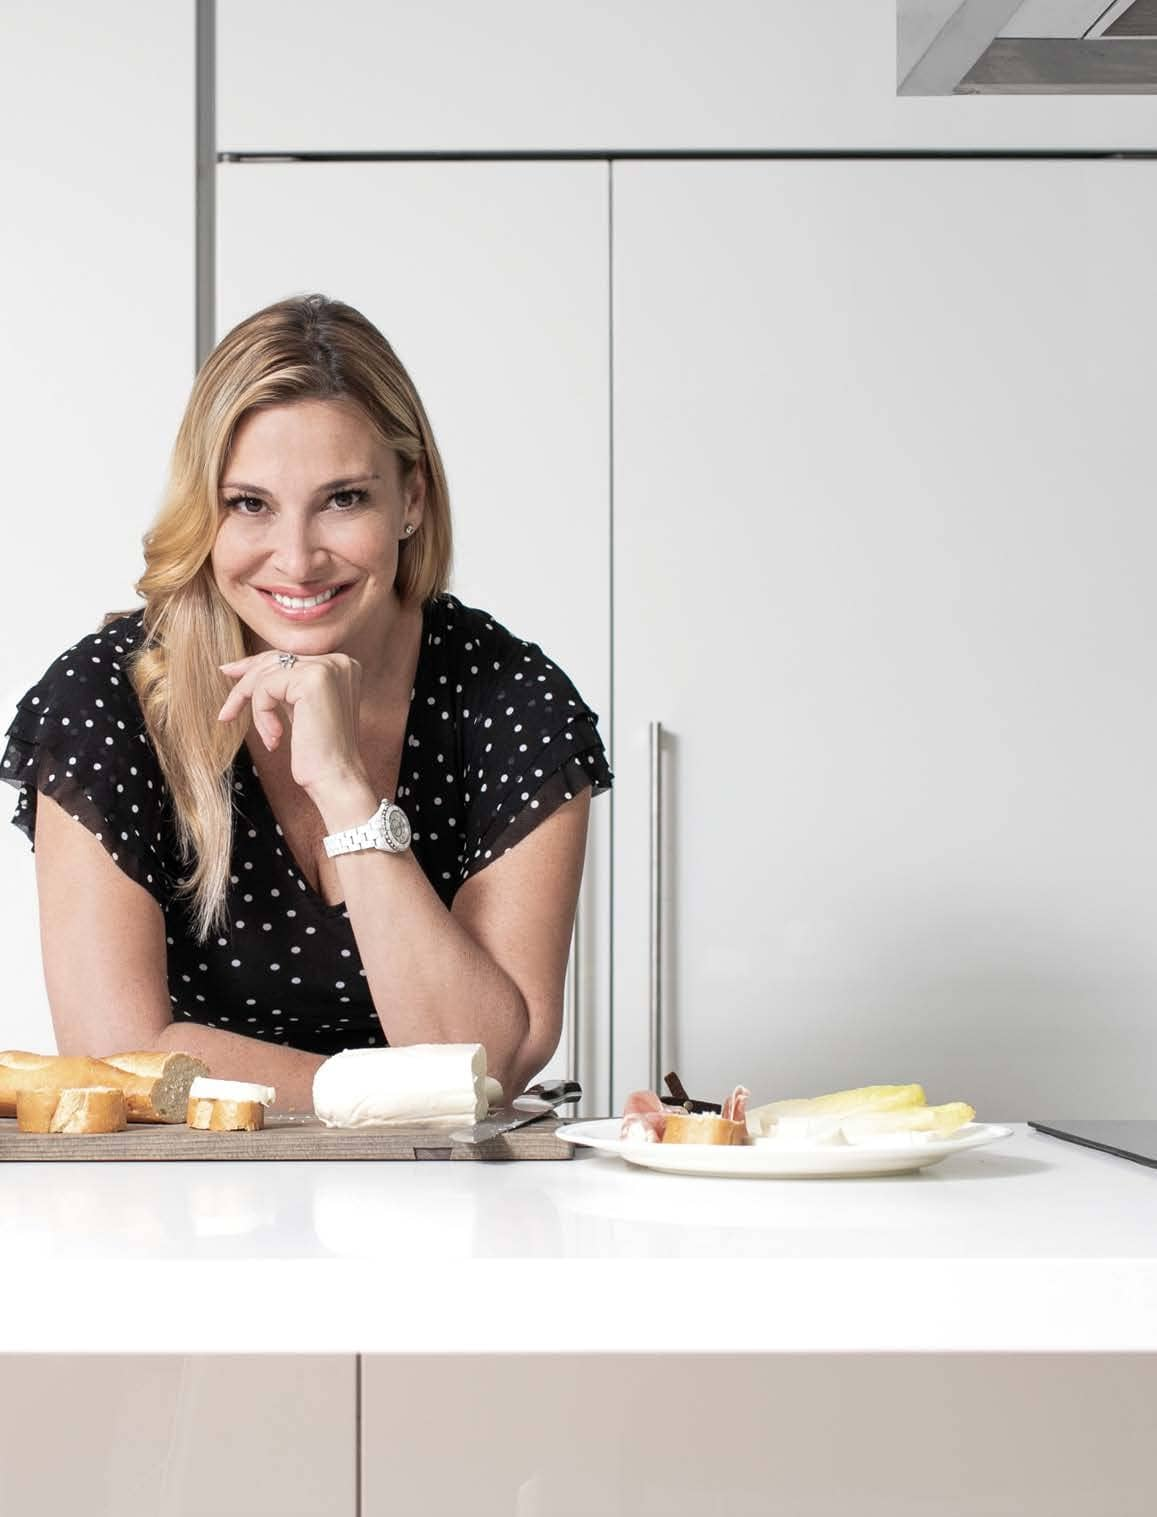 Food Network Star Donatella Arpaia Shares Her Love of Food